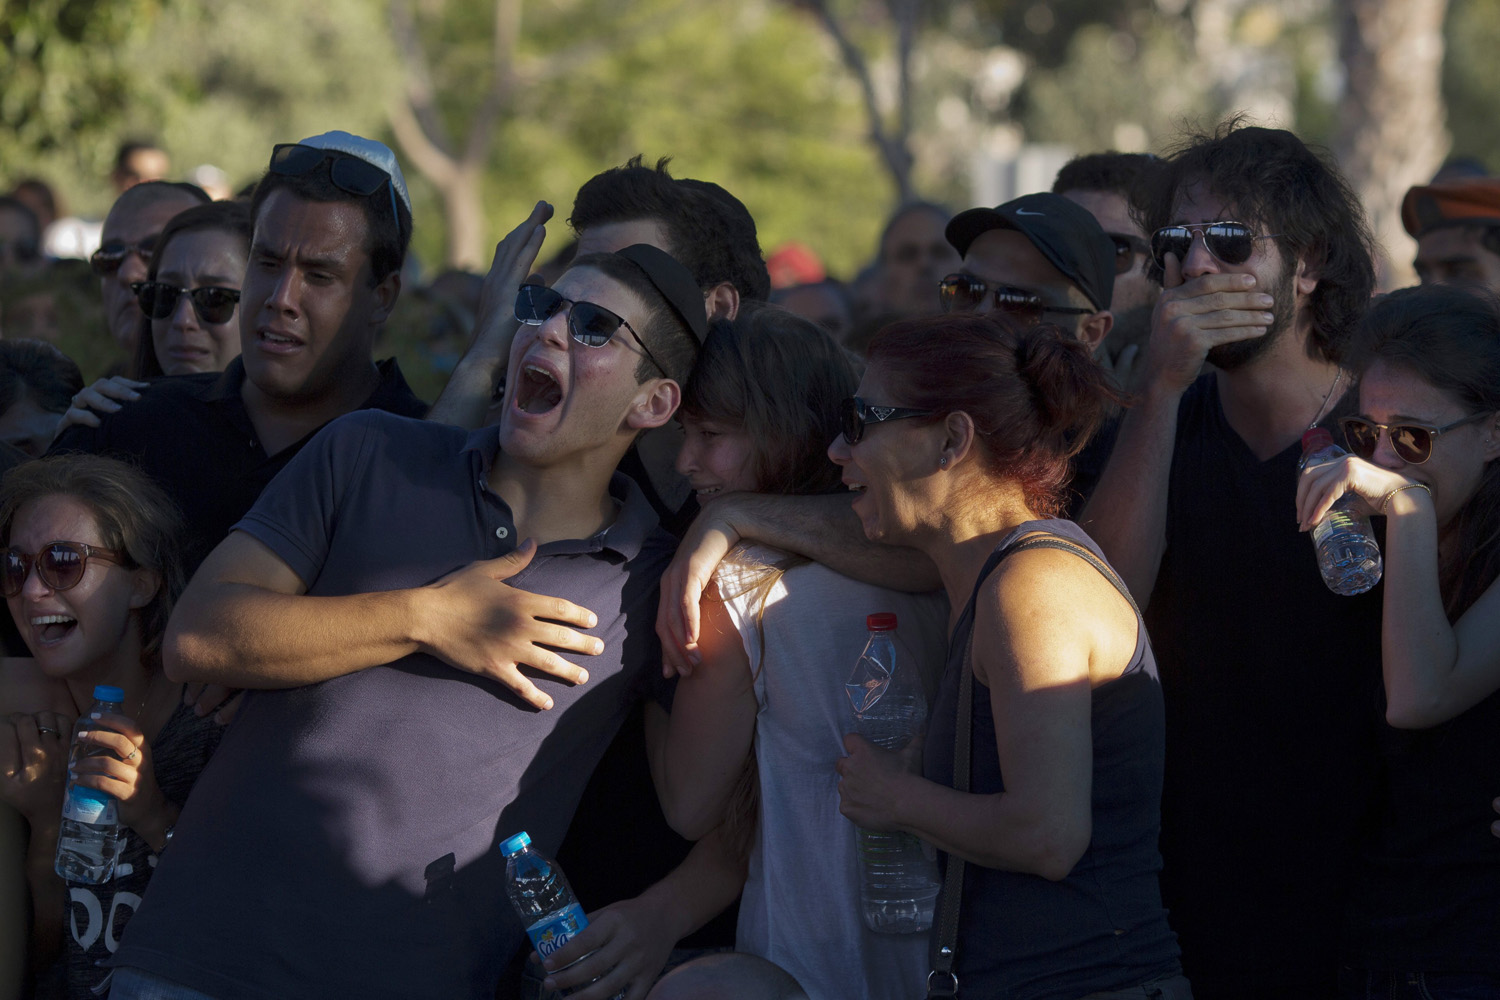 Jul. 31, 2014. Friends of Staff Sgt. Matan Gotlib, a Maglan elite unit soldier, morn during his funeral in the military cemetery in Rishon Letzion, central Israel.